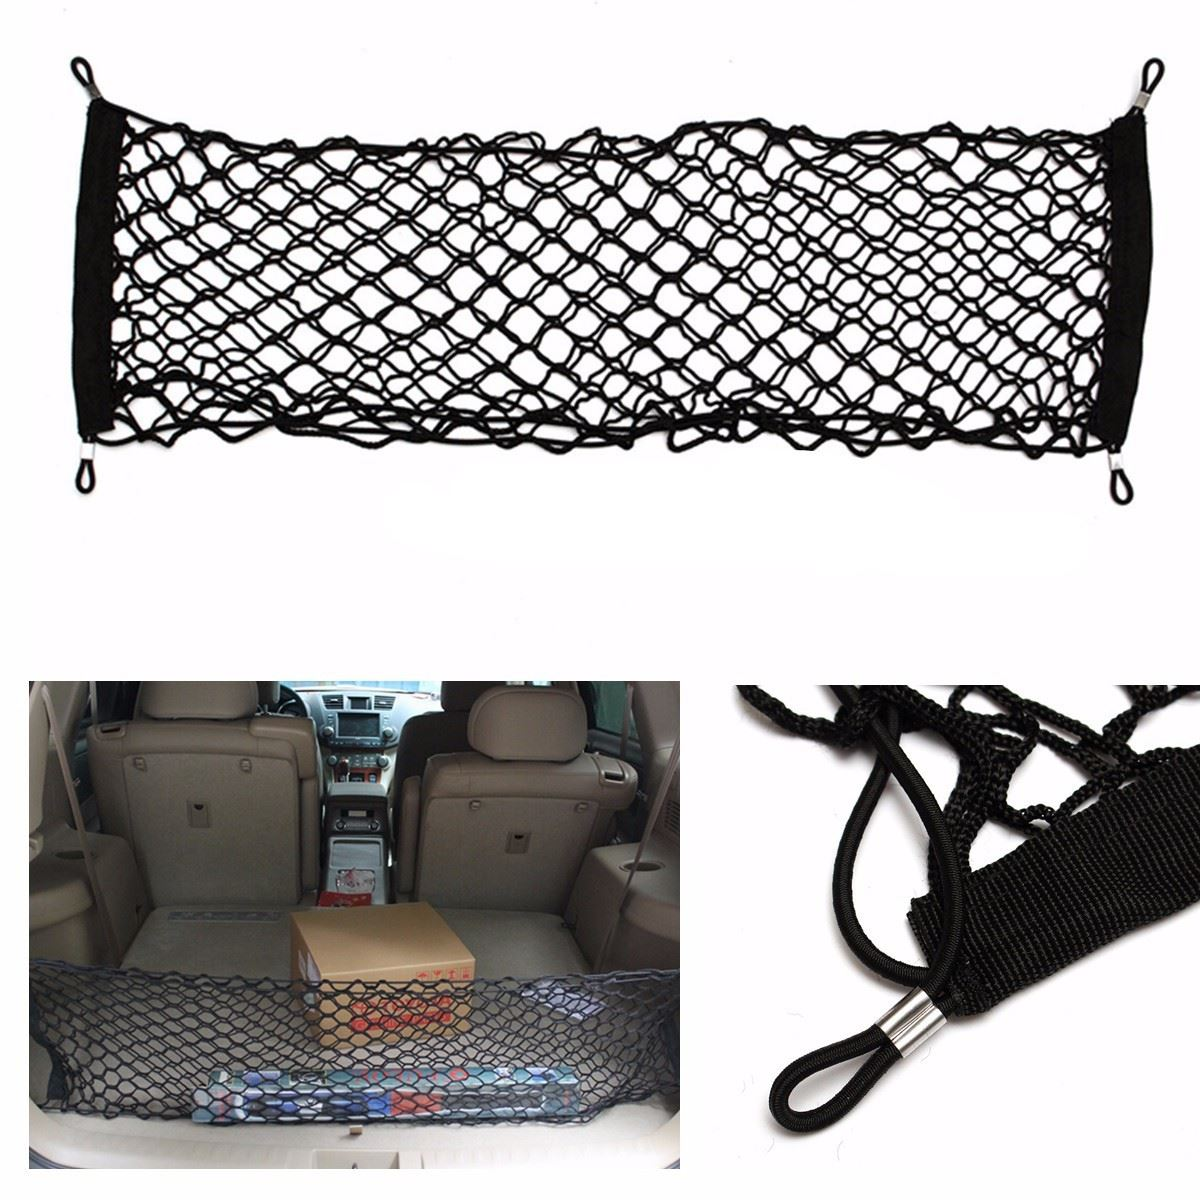 85x32cm universal double layer car truck seat back storage elastic mesh net bag luggage. Black Bedroom Furniture Sets. Home Design Ideas